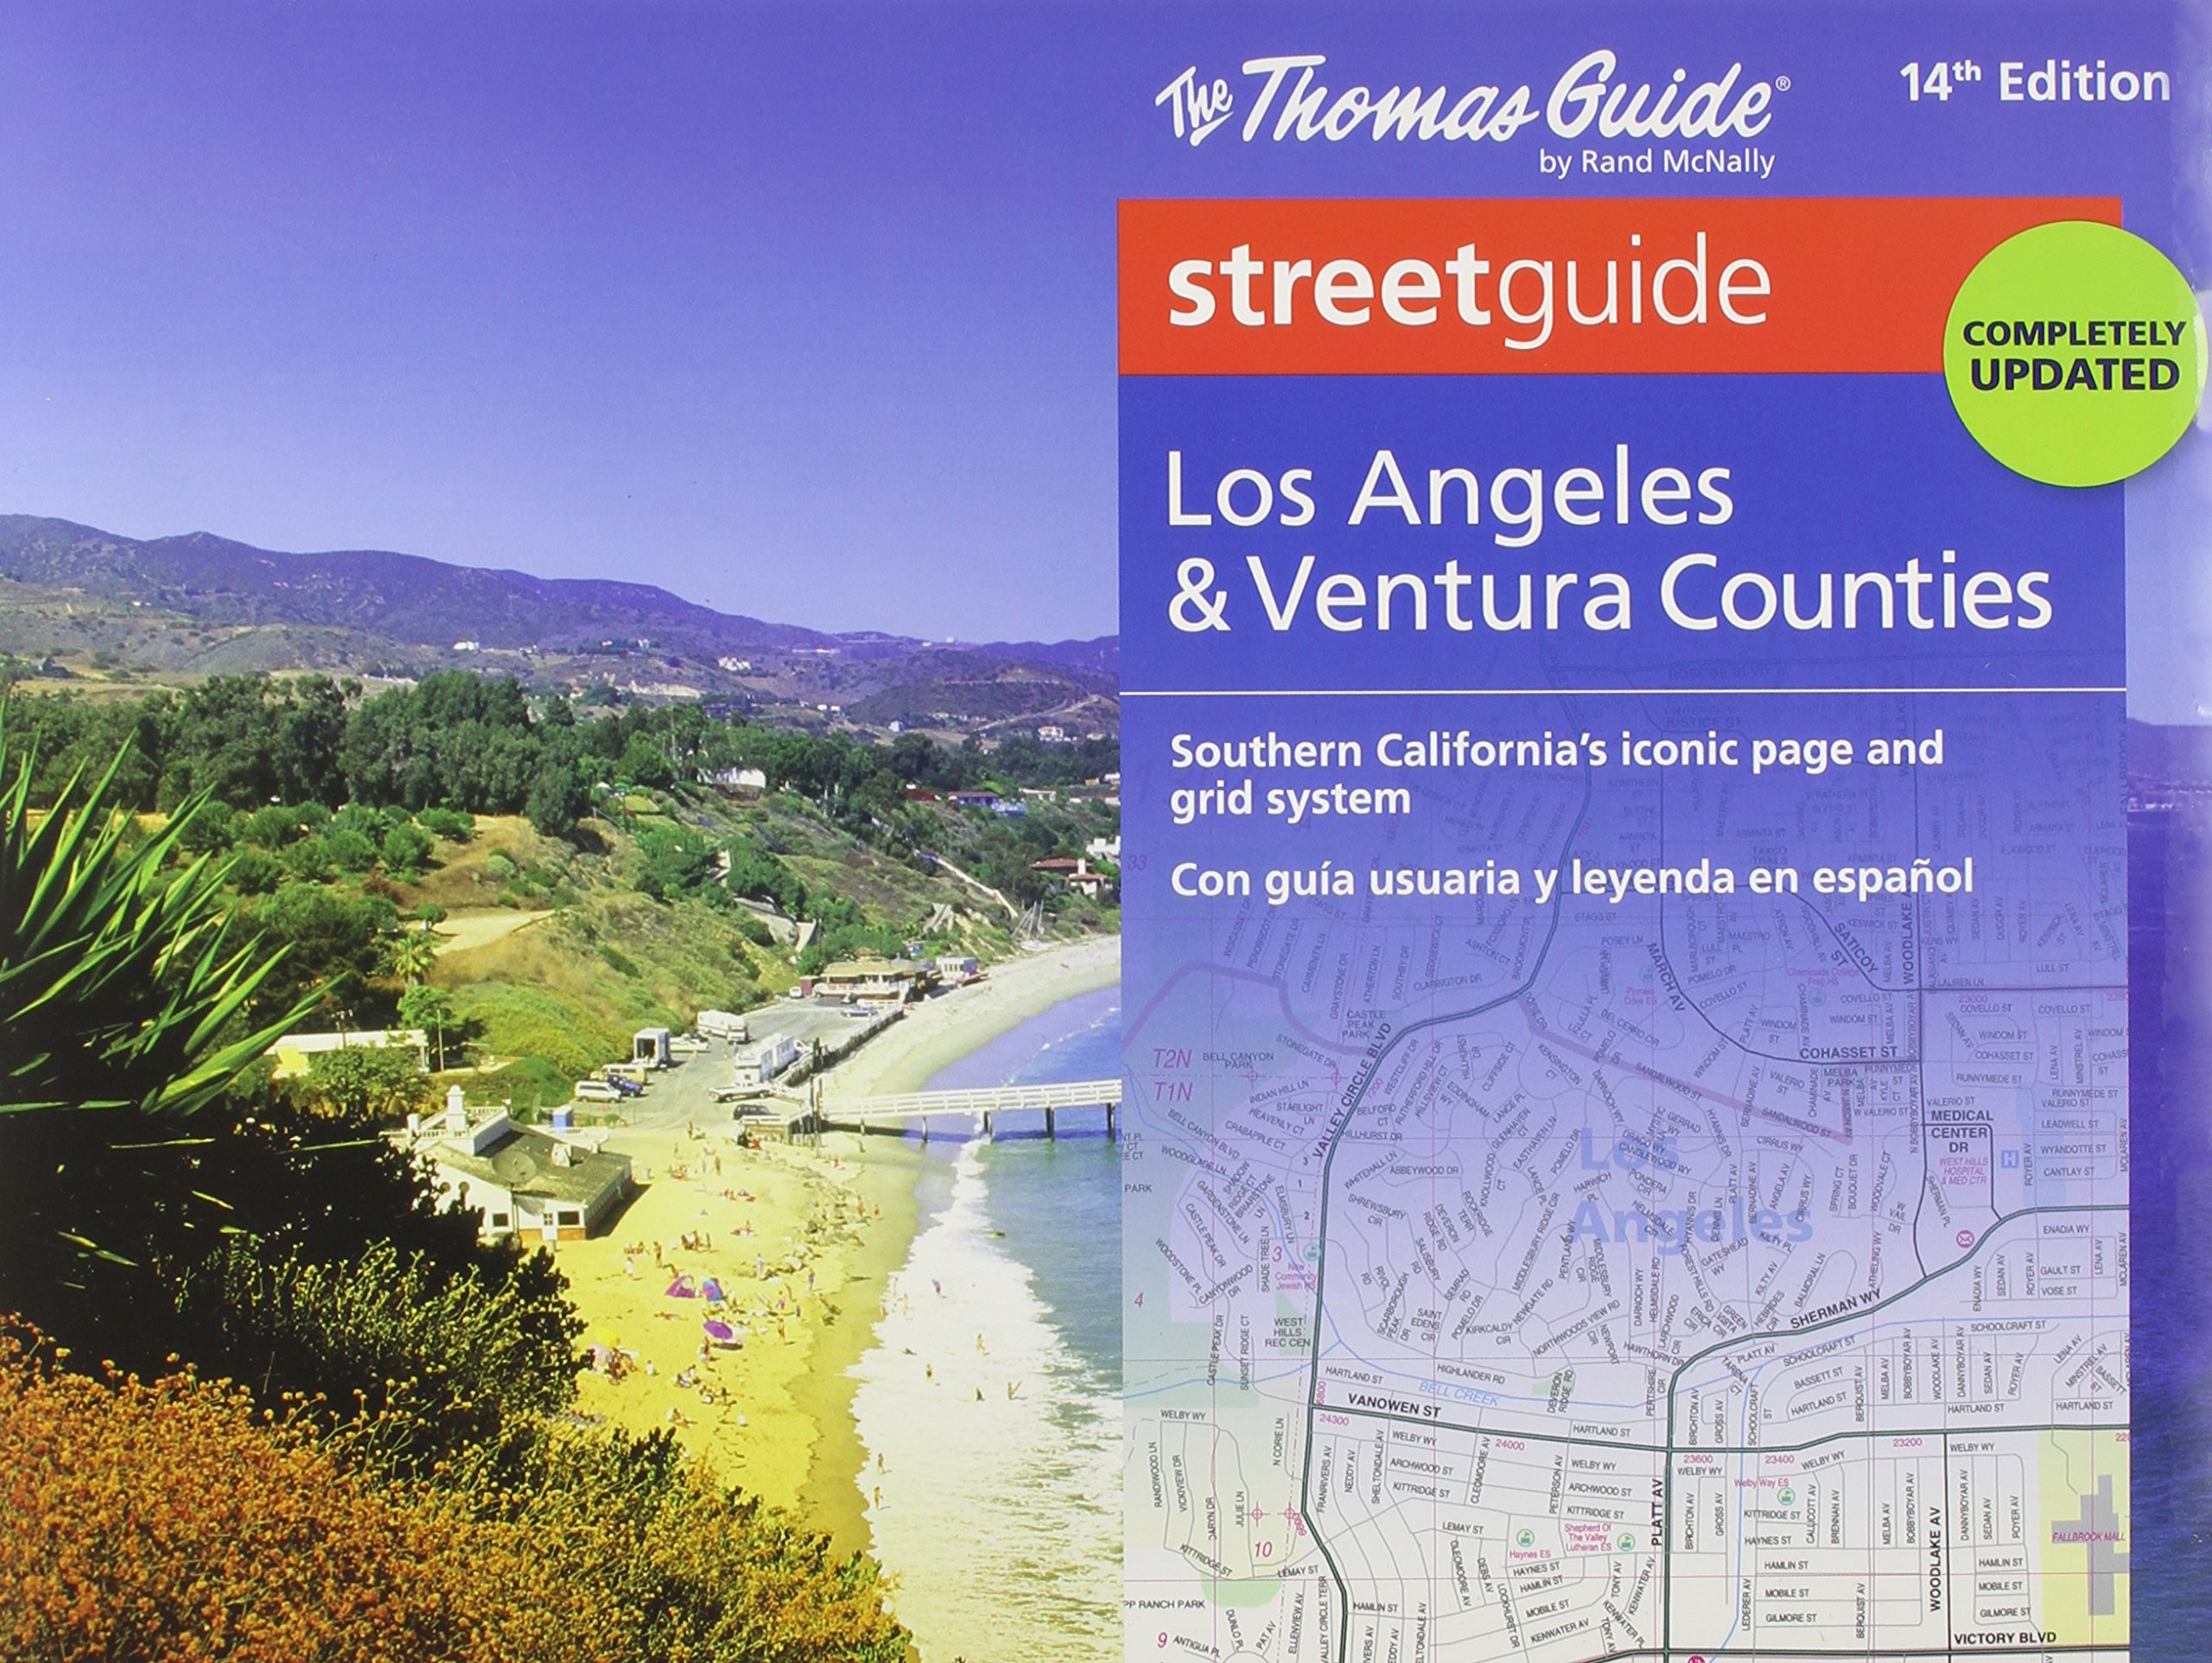 Download The Thomas Guide Streetguide, Los Angeles & Ventura Counties pdf epub